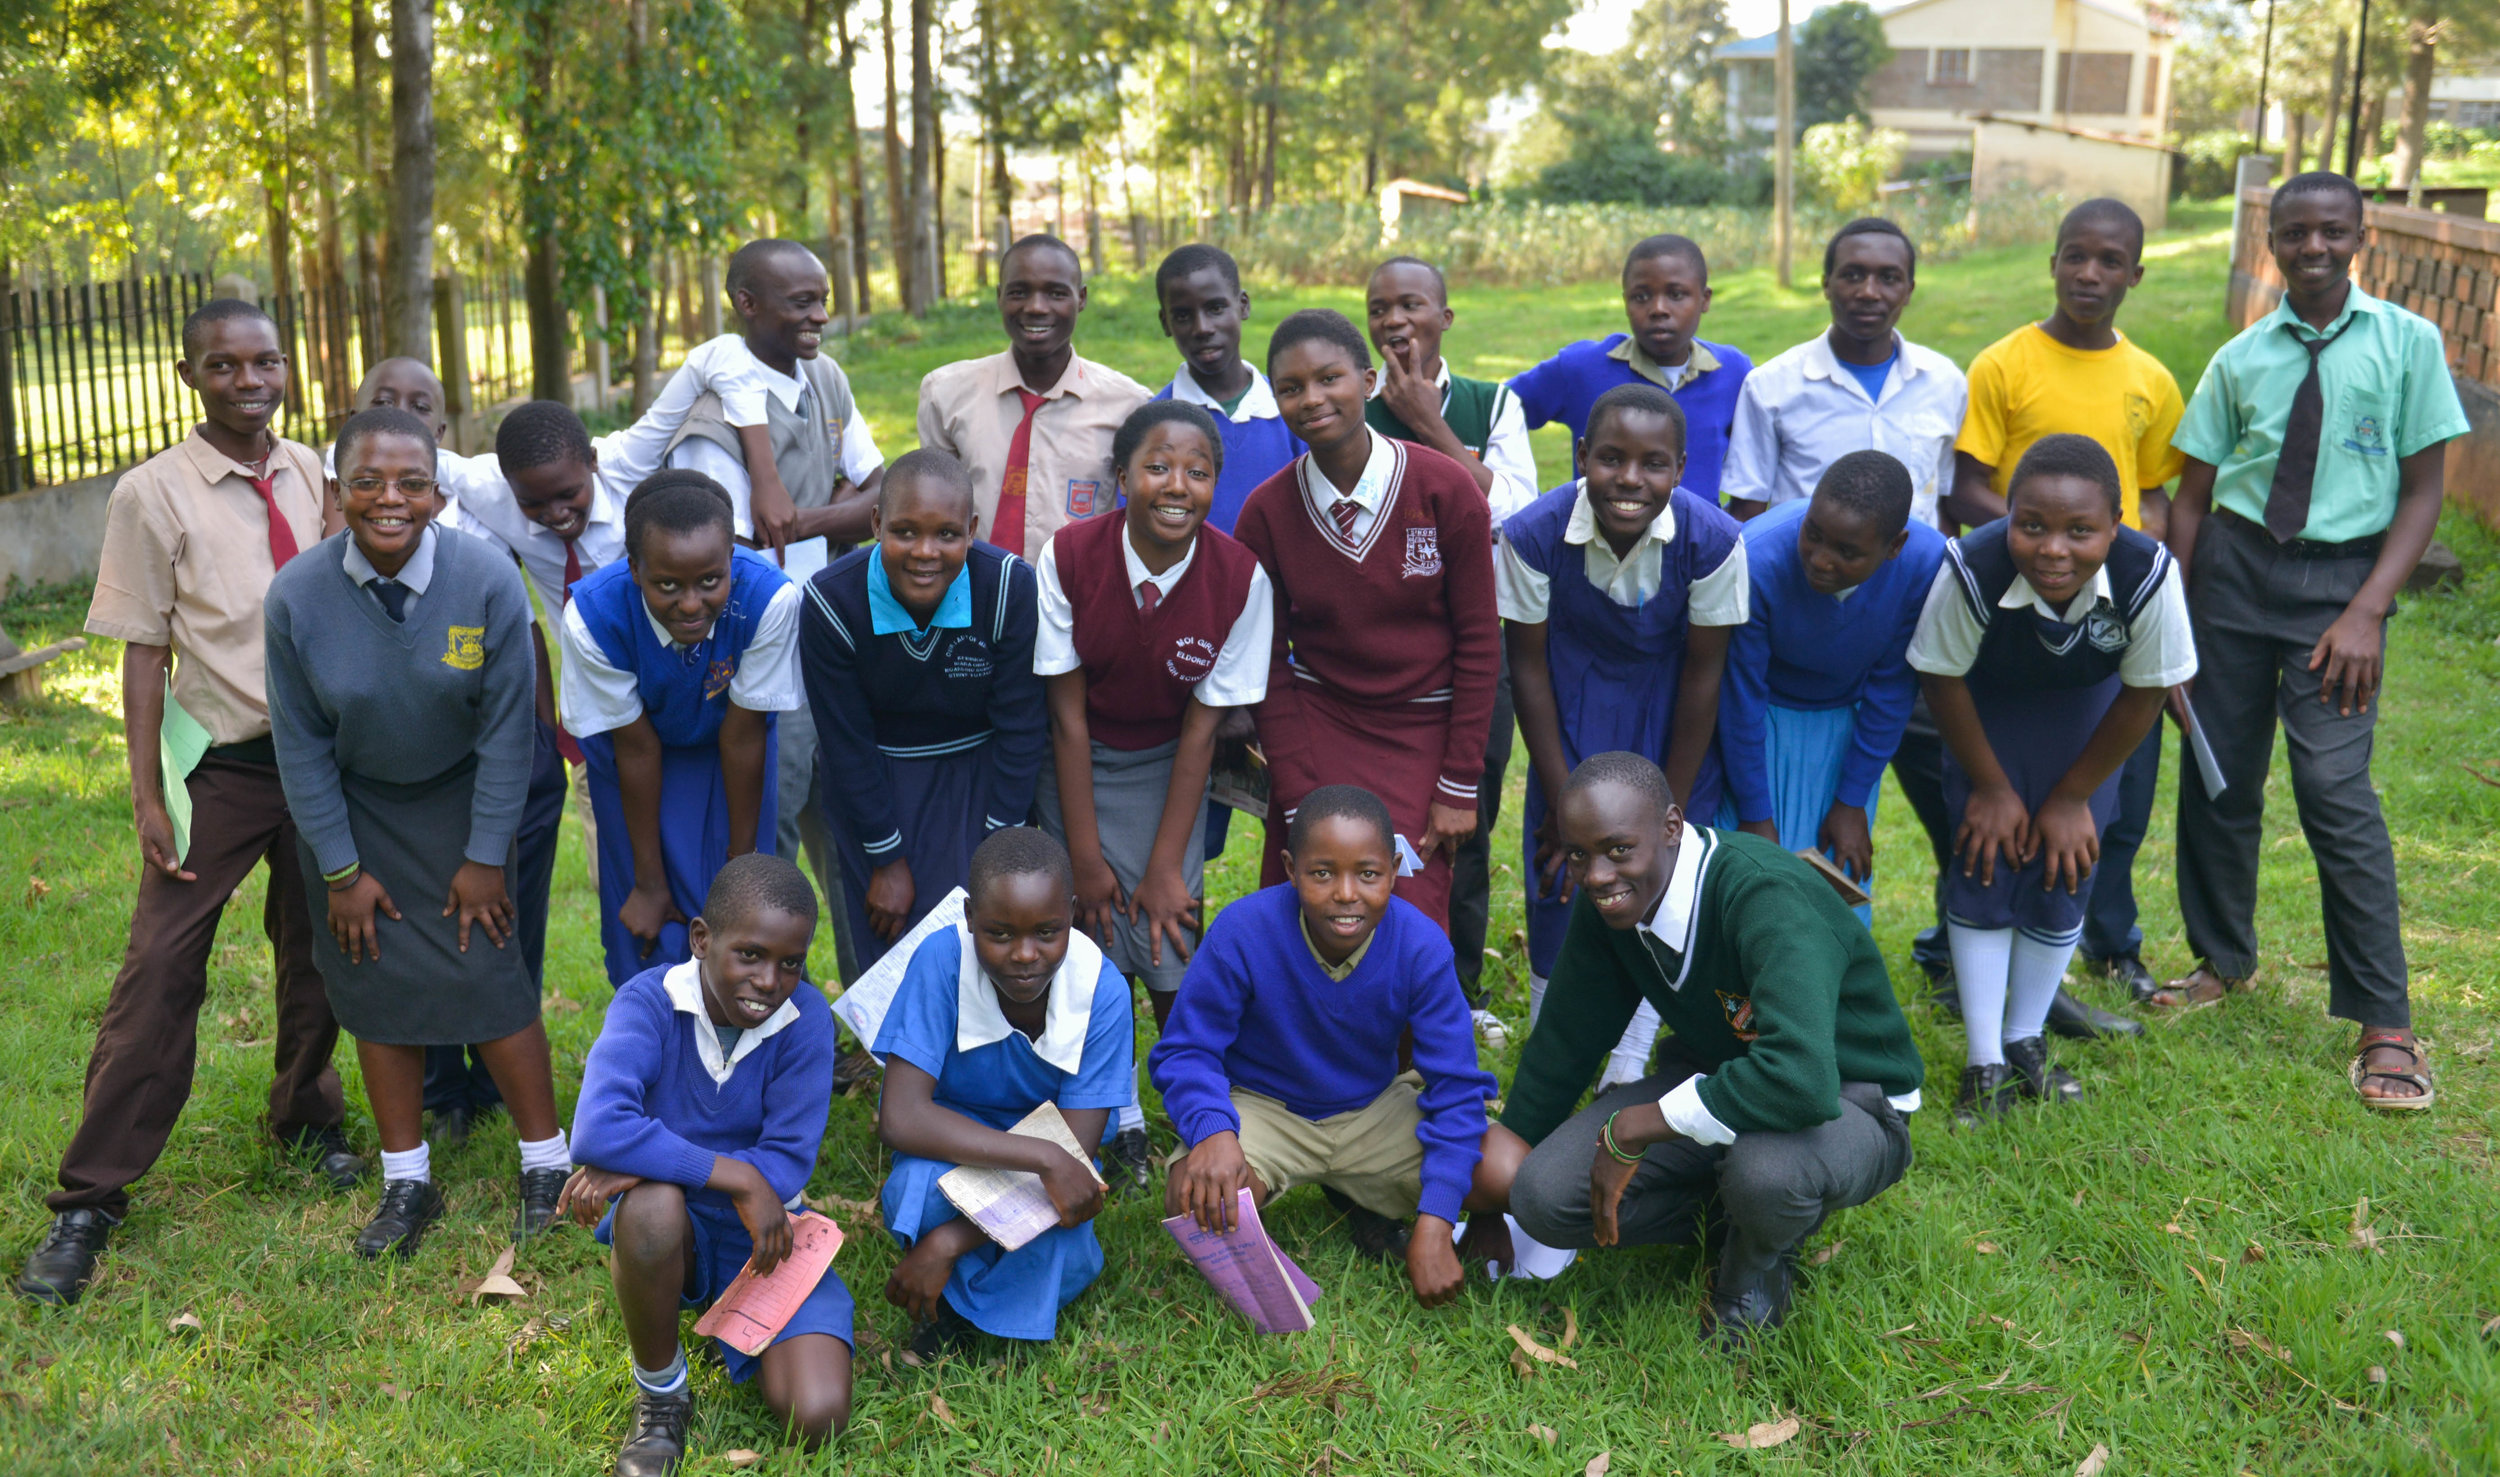 All of the students Ajiri sponsored in school in 2016, taken at the annual student field day.